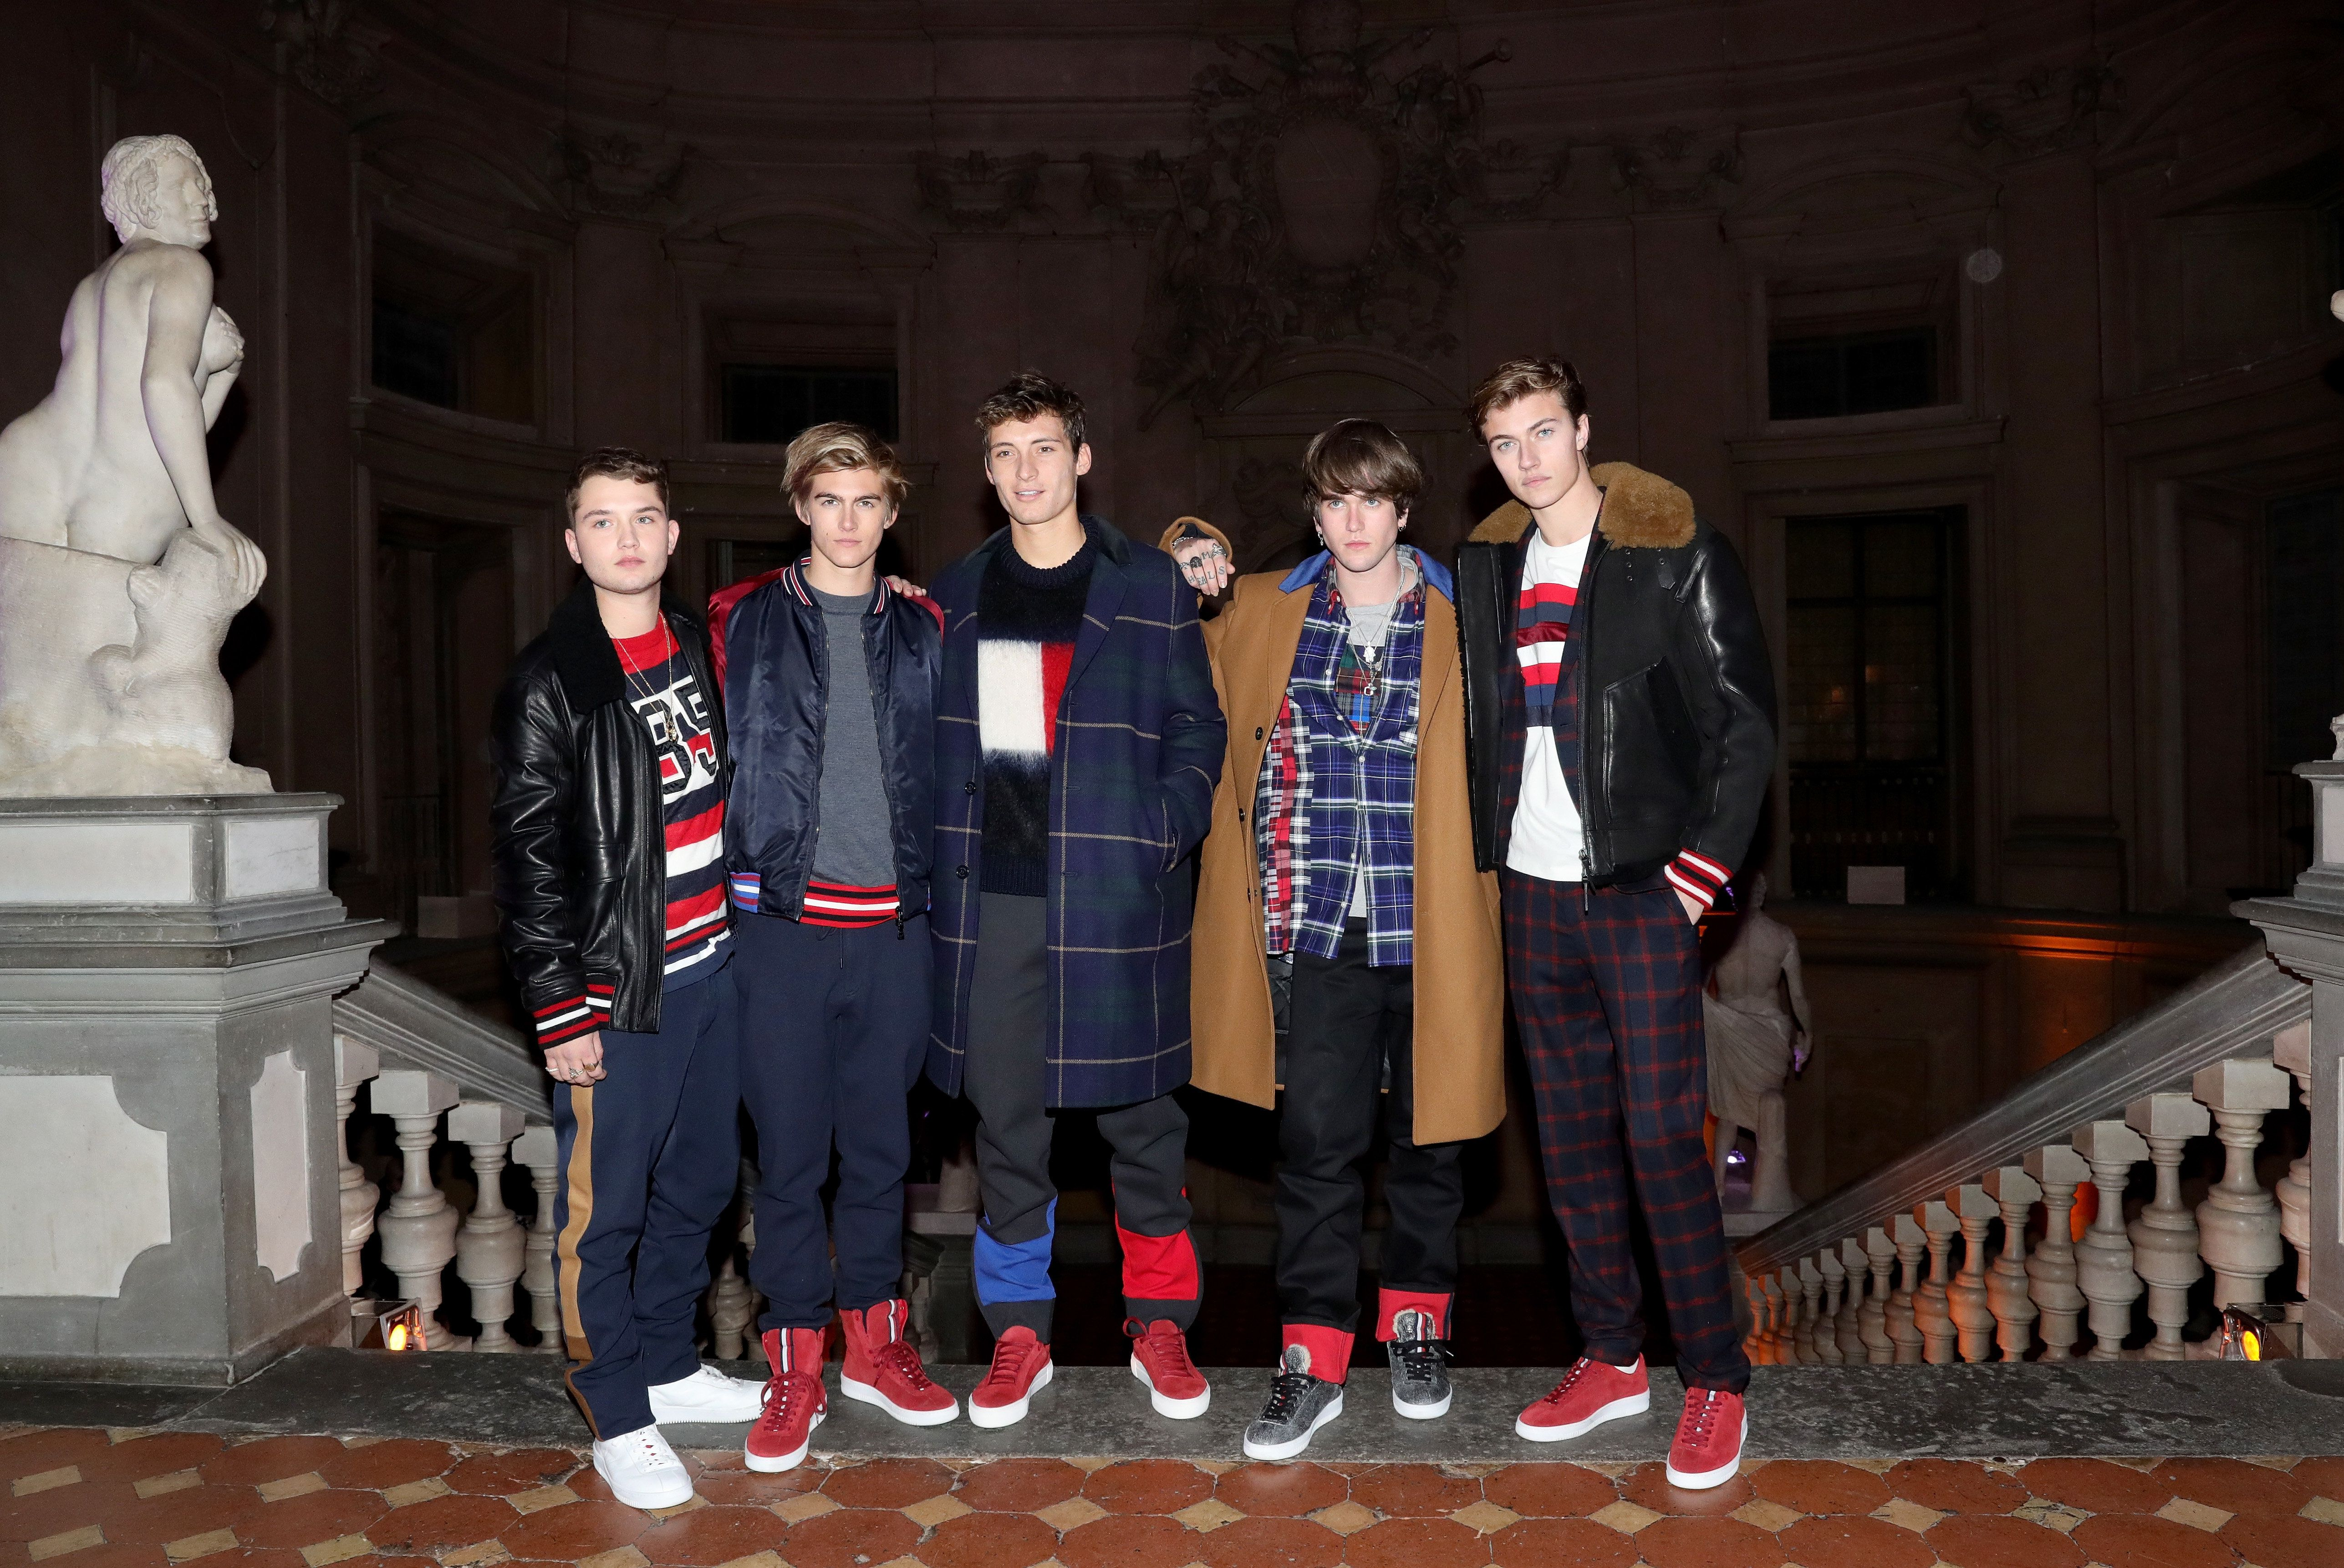 Jude Law, Cindy Crawford And Daniel Day-Lewis' Sons Model For Tommy